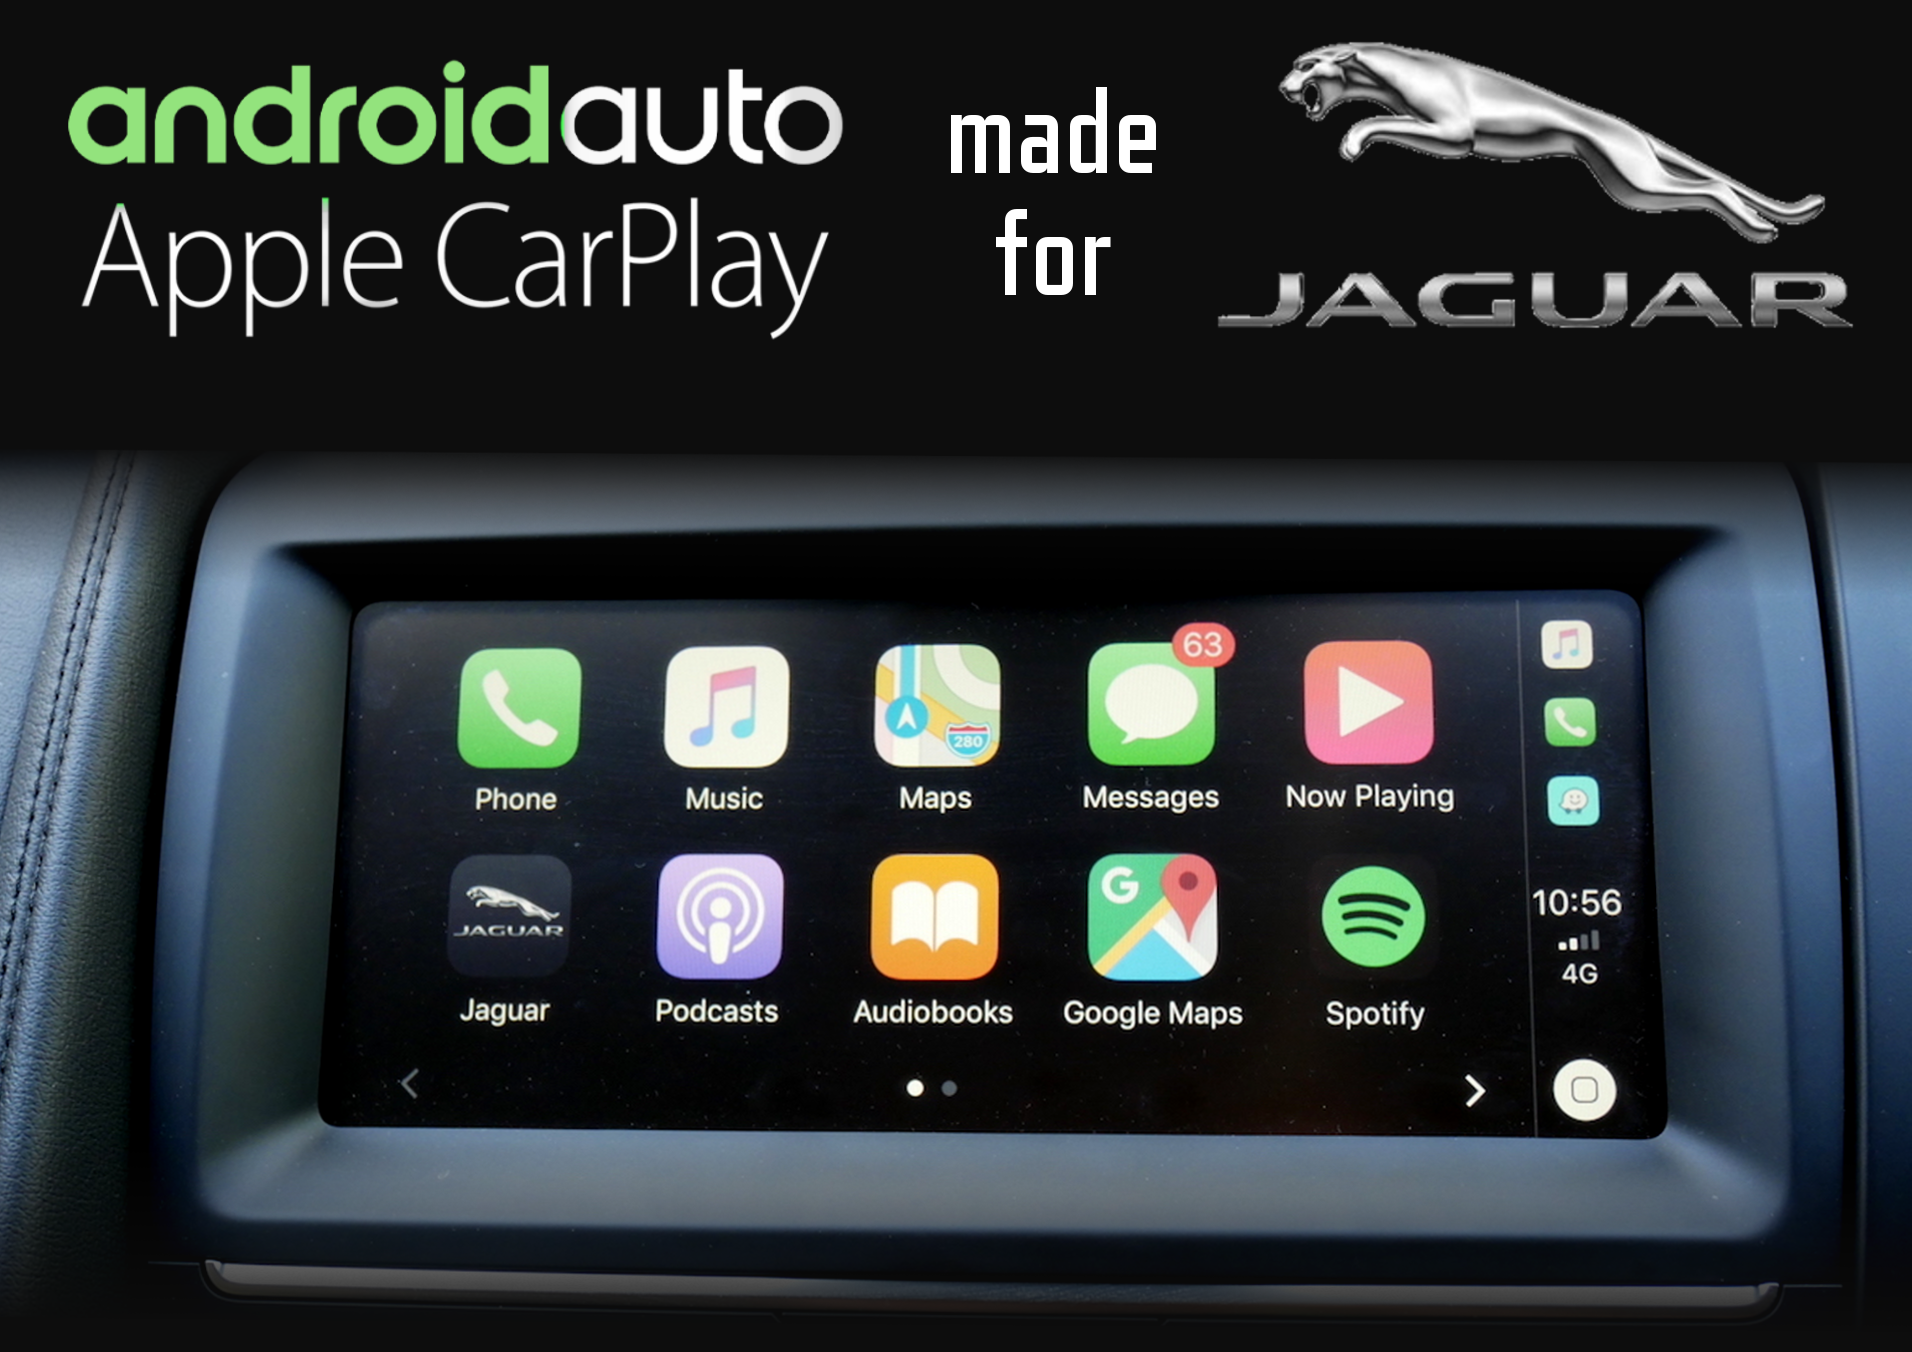 Aftermarket Apple Carplay, Android Auto integration for Jaguar factory radio screens for XE, XK/XKR, XF/XJ, XF, F-Type, E-Pace, F-Pace, XJL